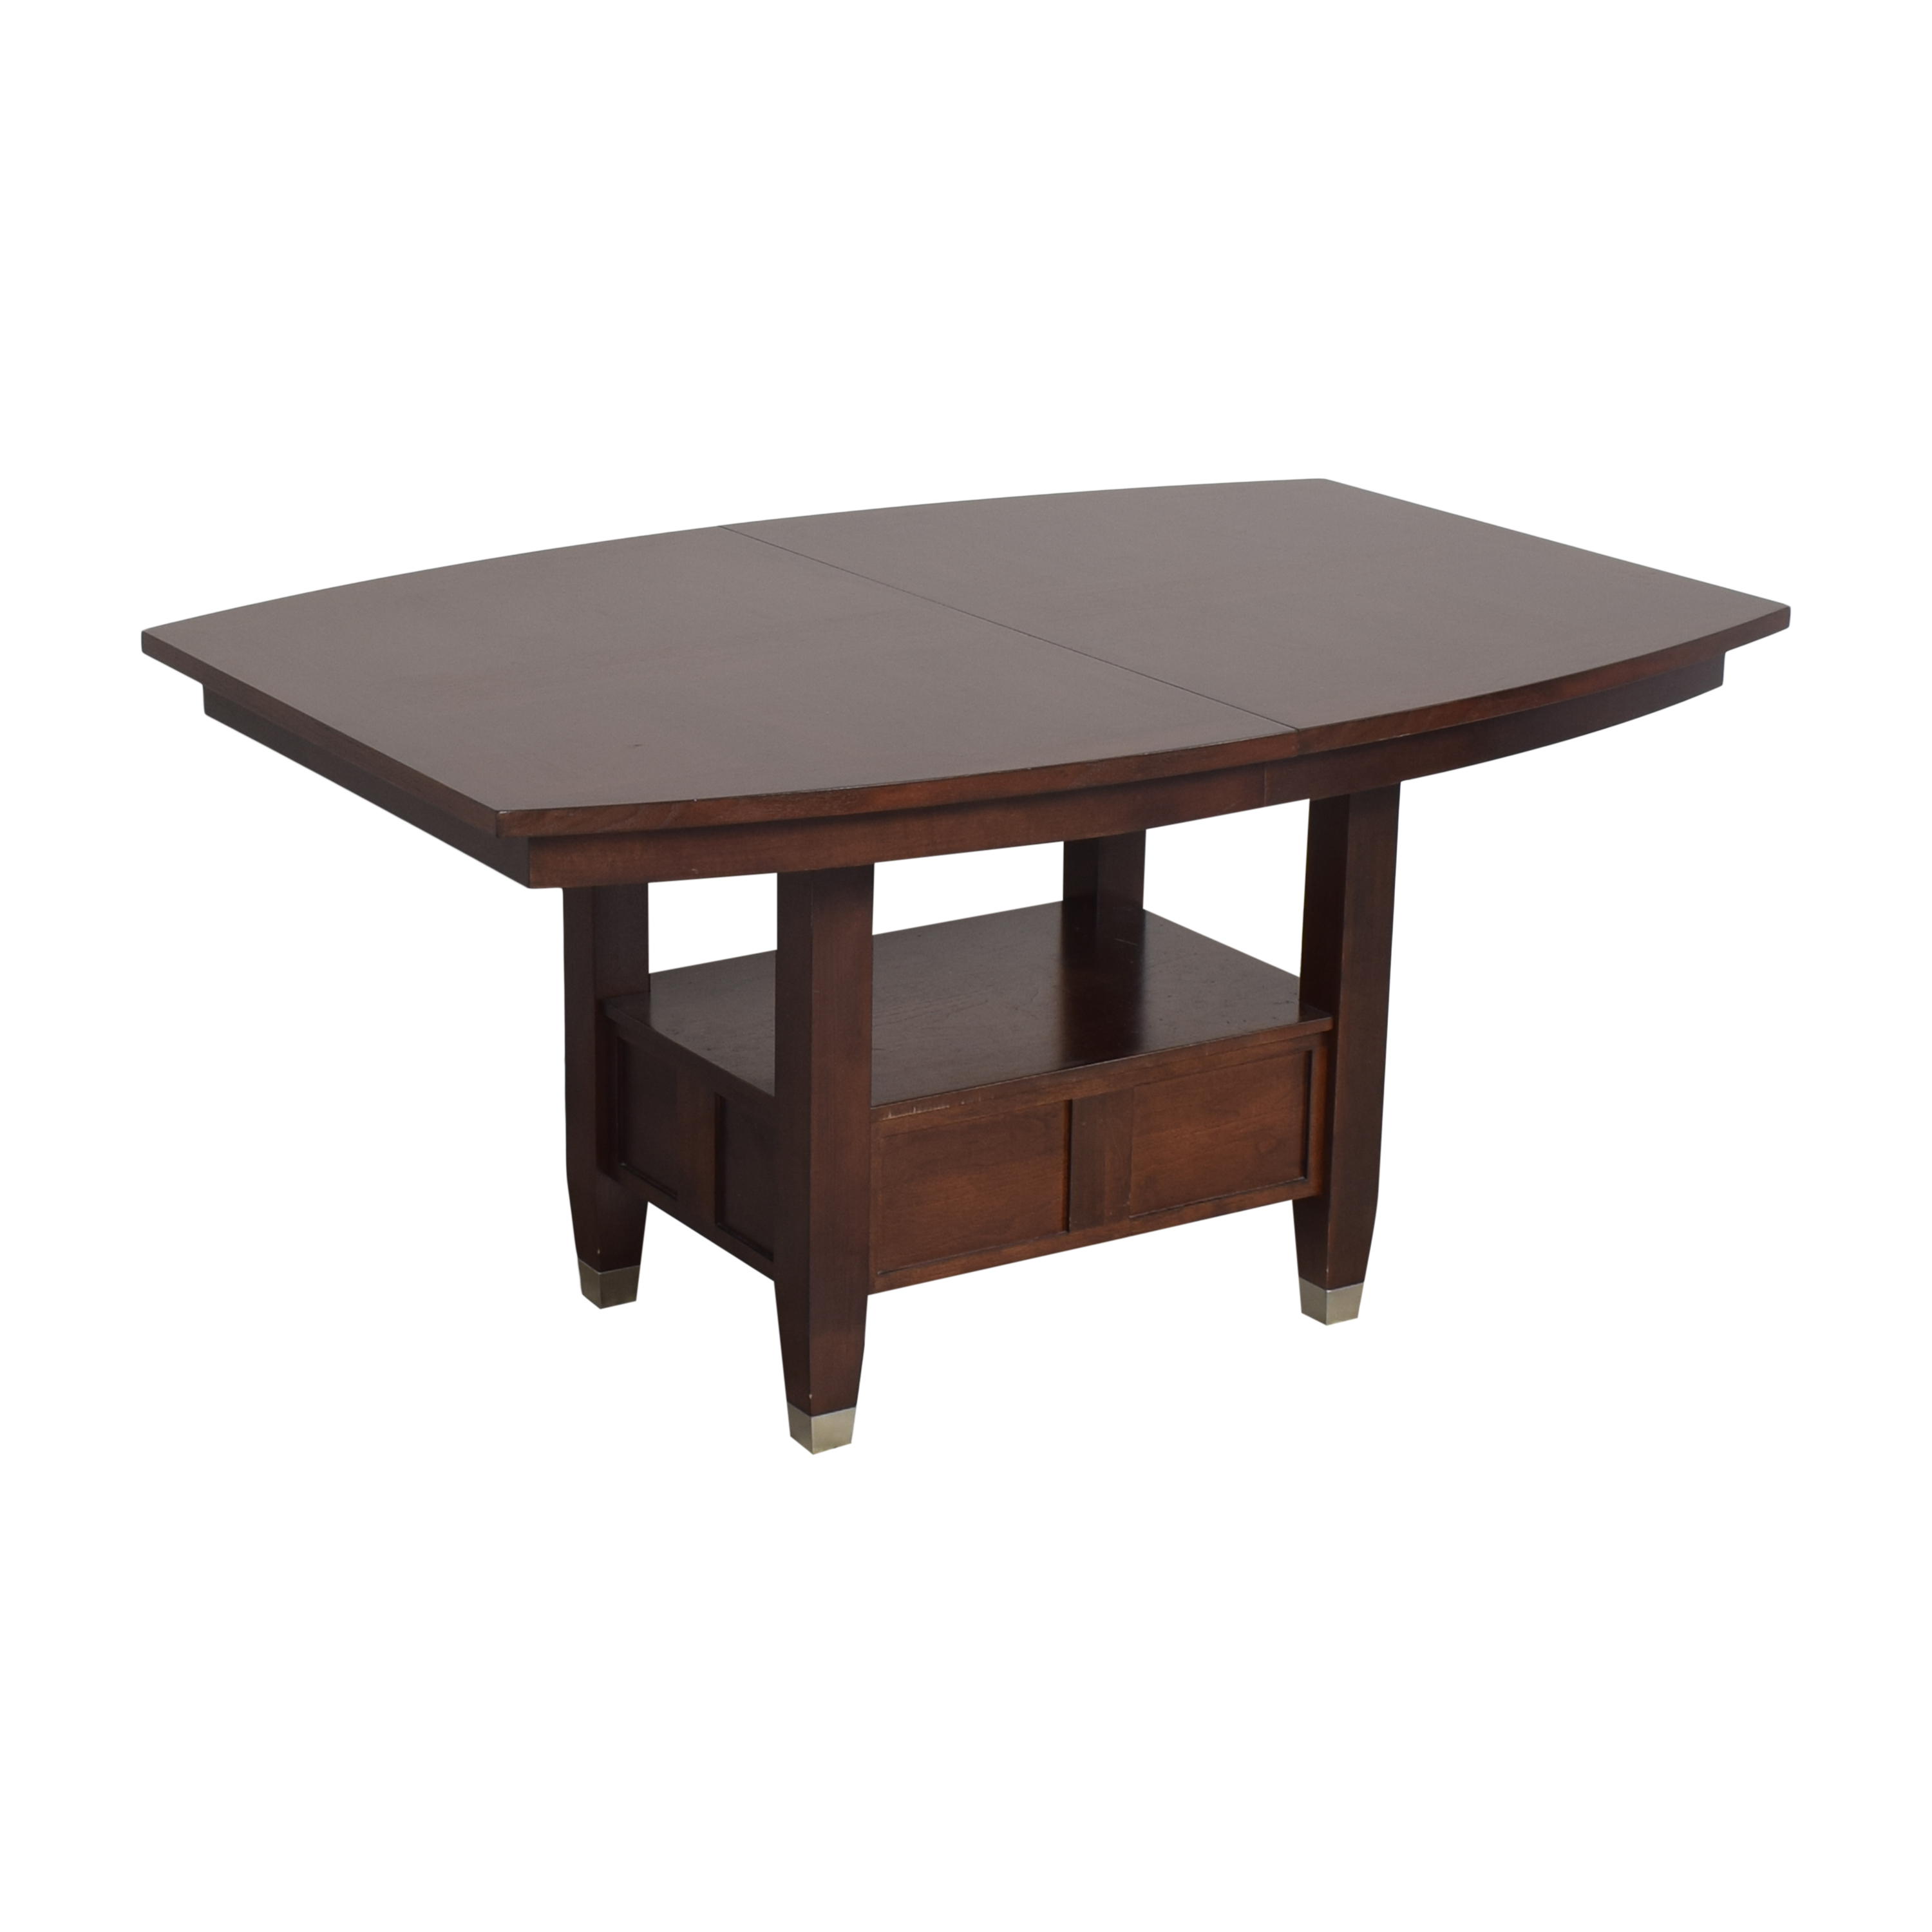 Broyhill Furniture Broyhill Furniture Extendable Dining Table second hand